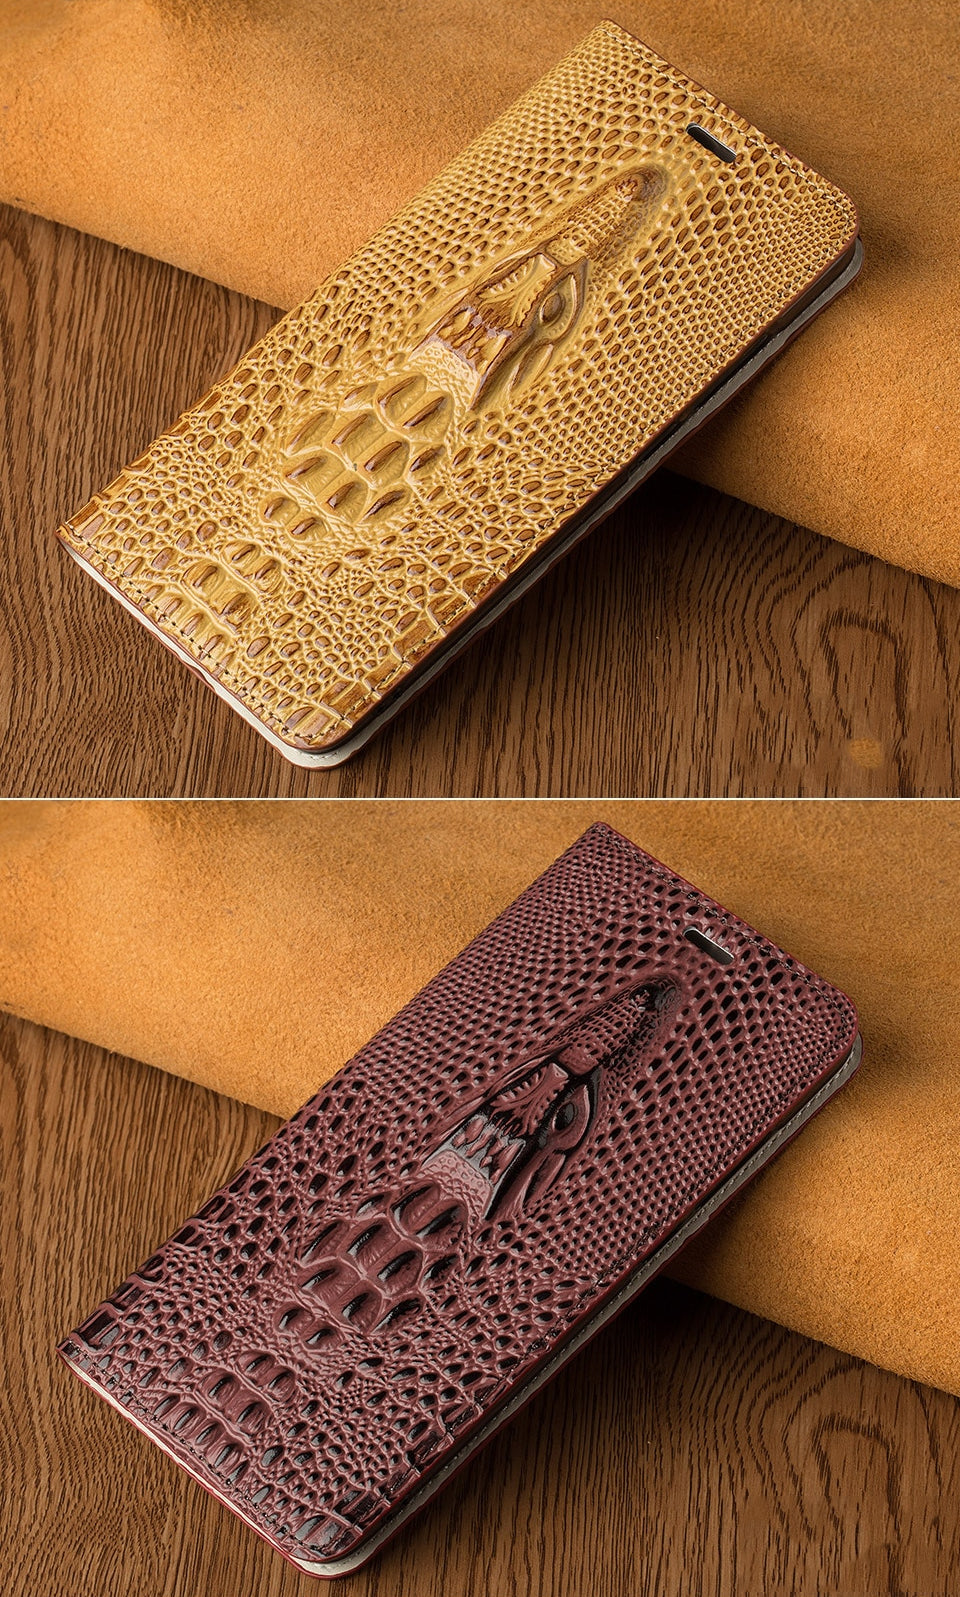 Crocodile Phone Case For iPhone X XS XS Max XR 6 7 8 8 Plus Genuine Leather Flip Case With Built In Card Protector Magnetic Case for iPhone